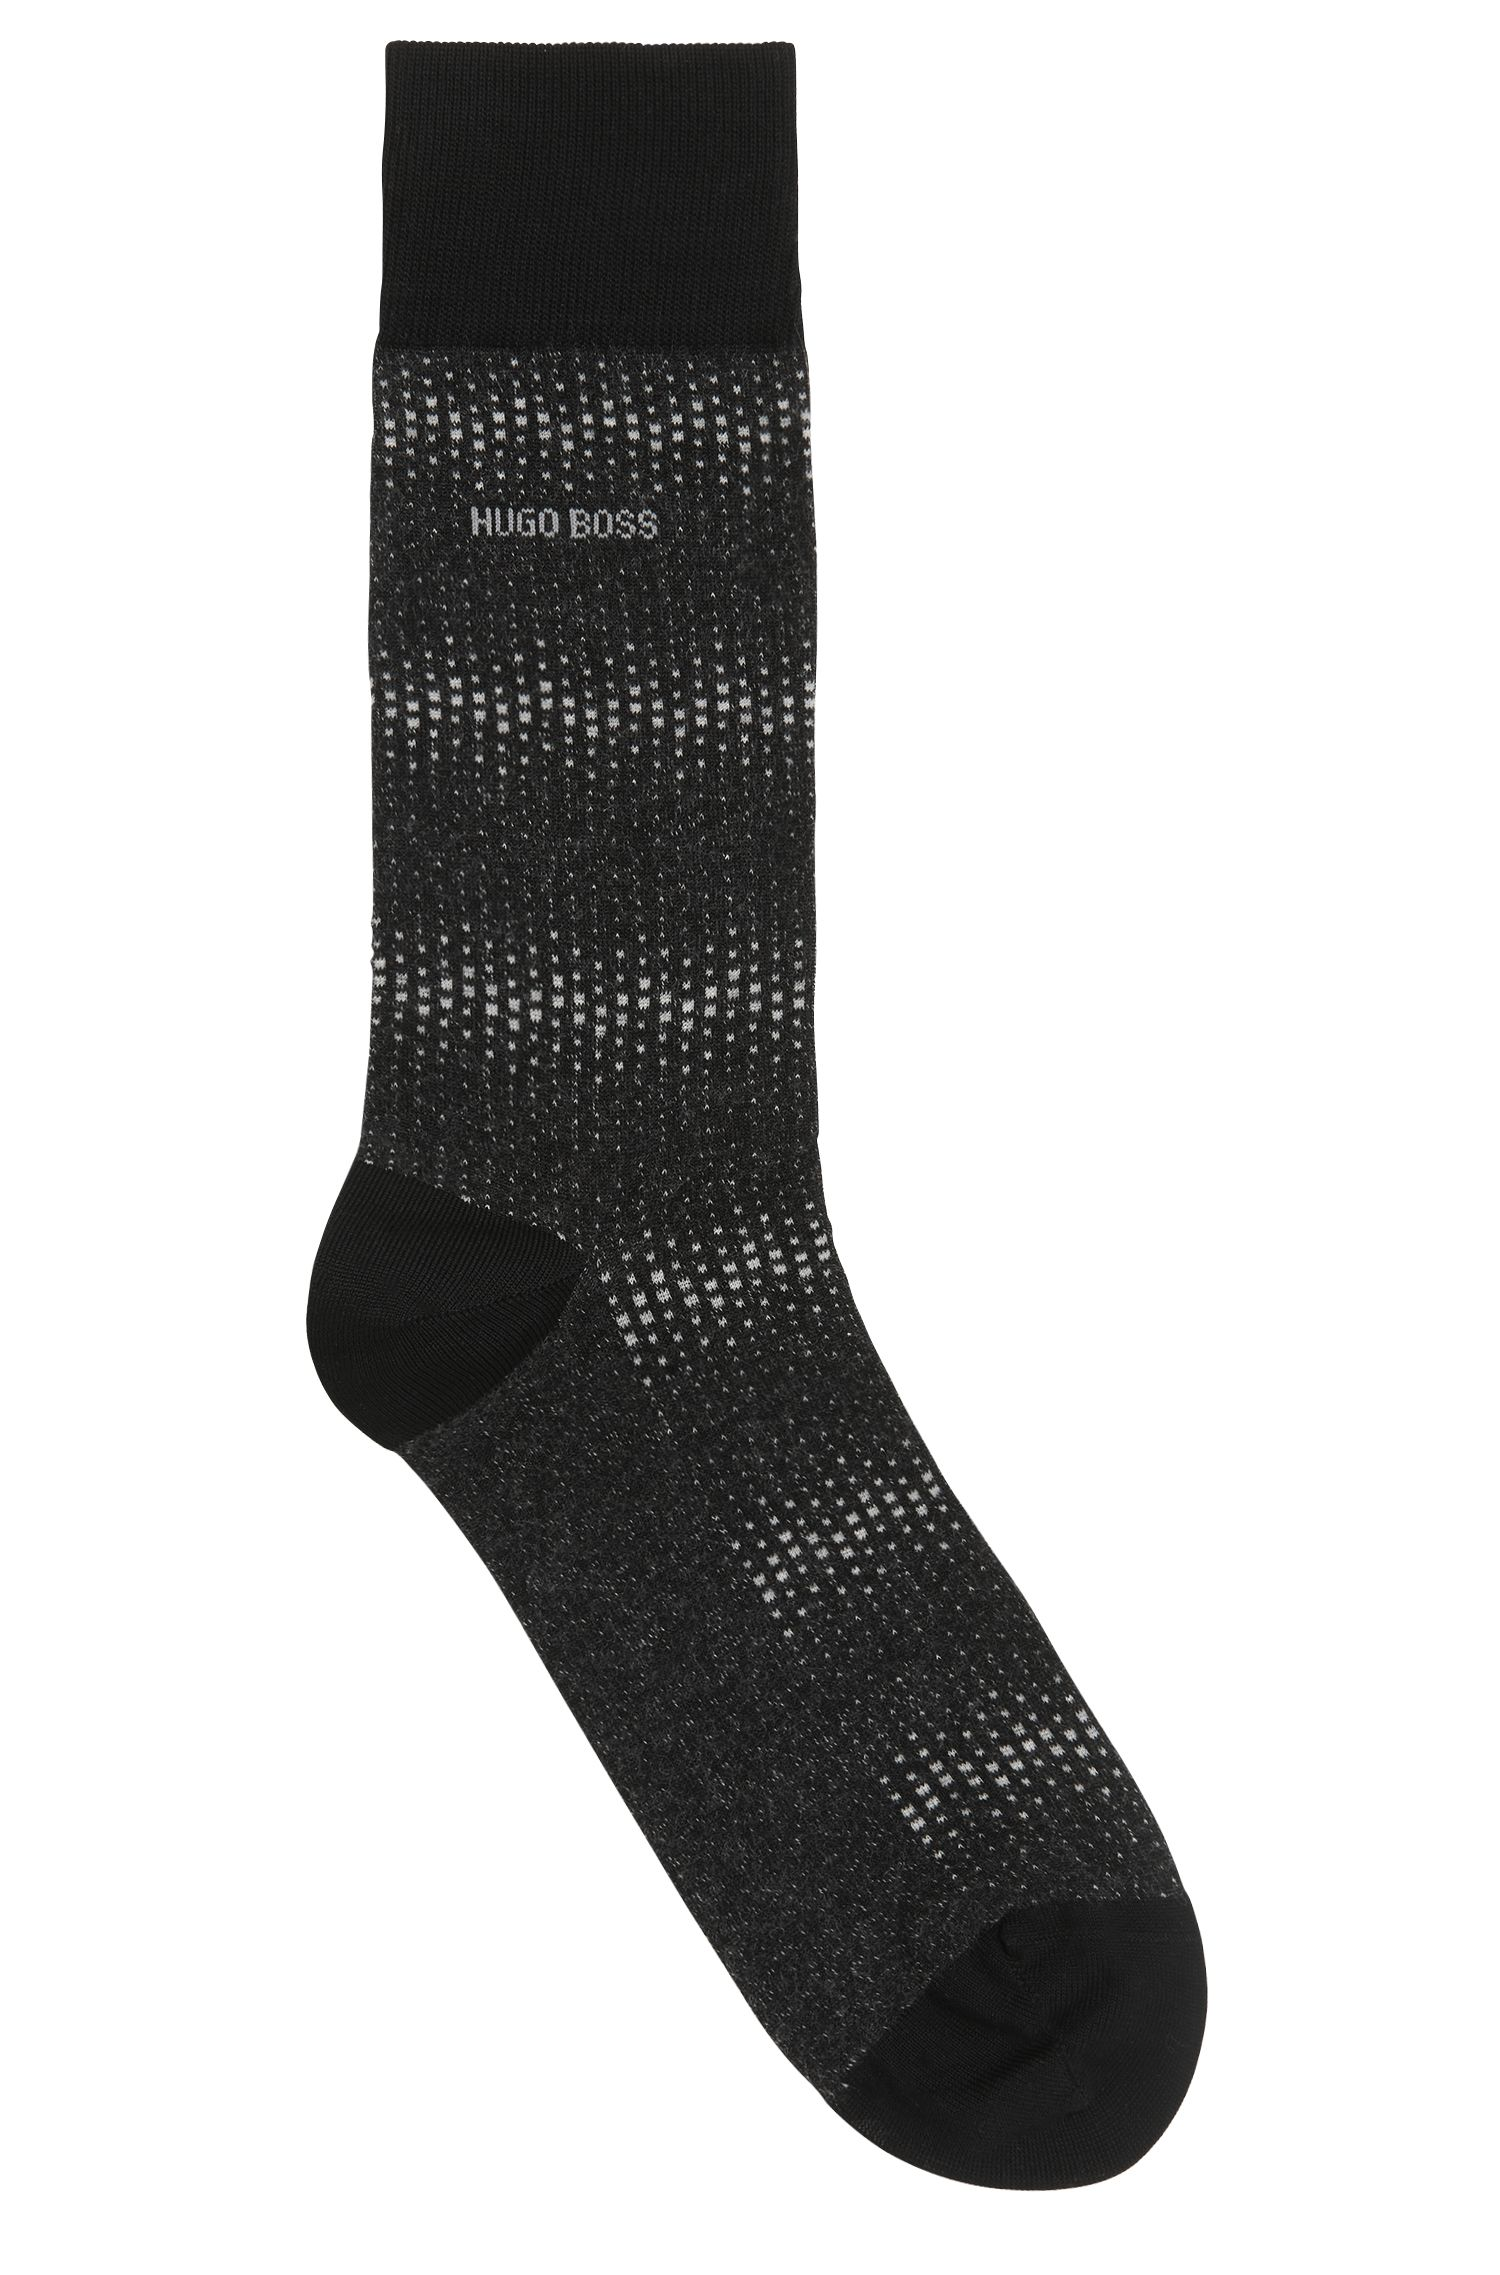 Micro-pattern socks in mercerised stretch cotton